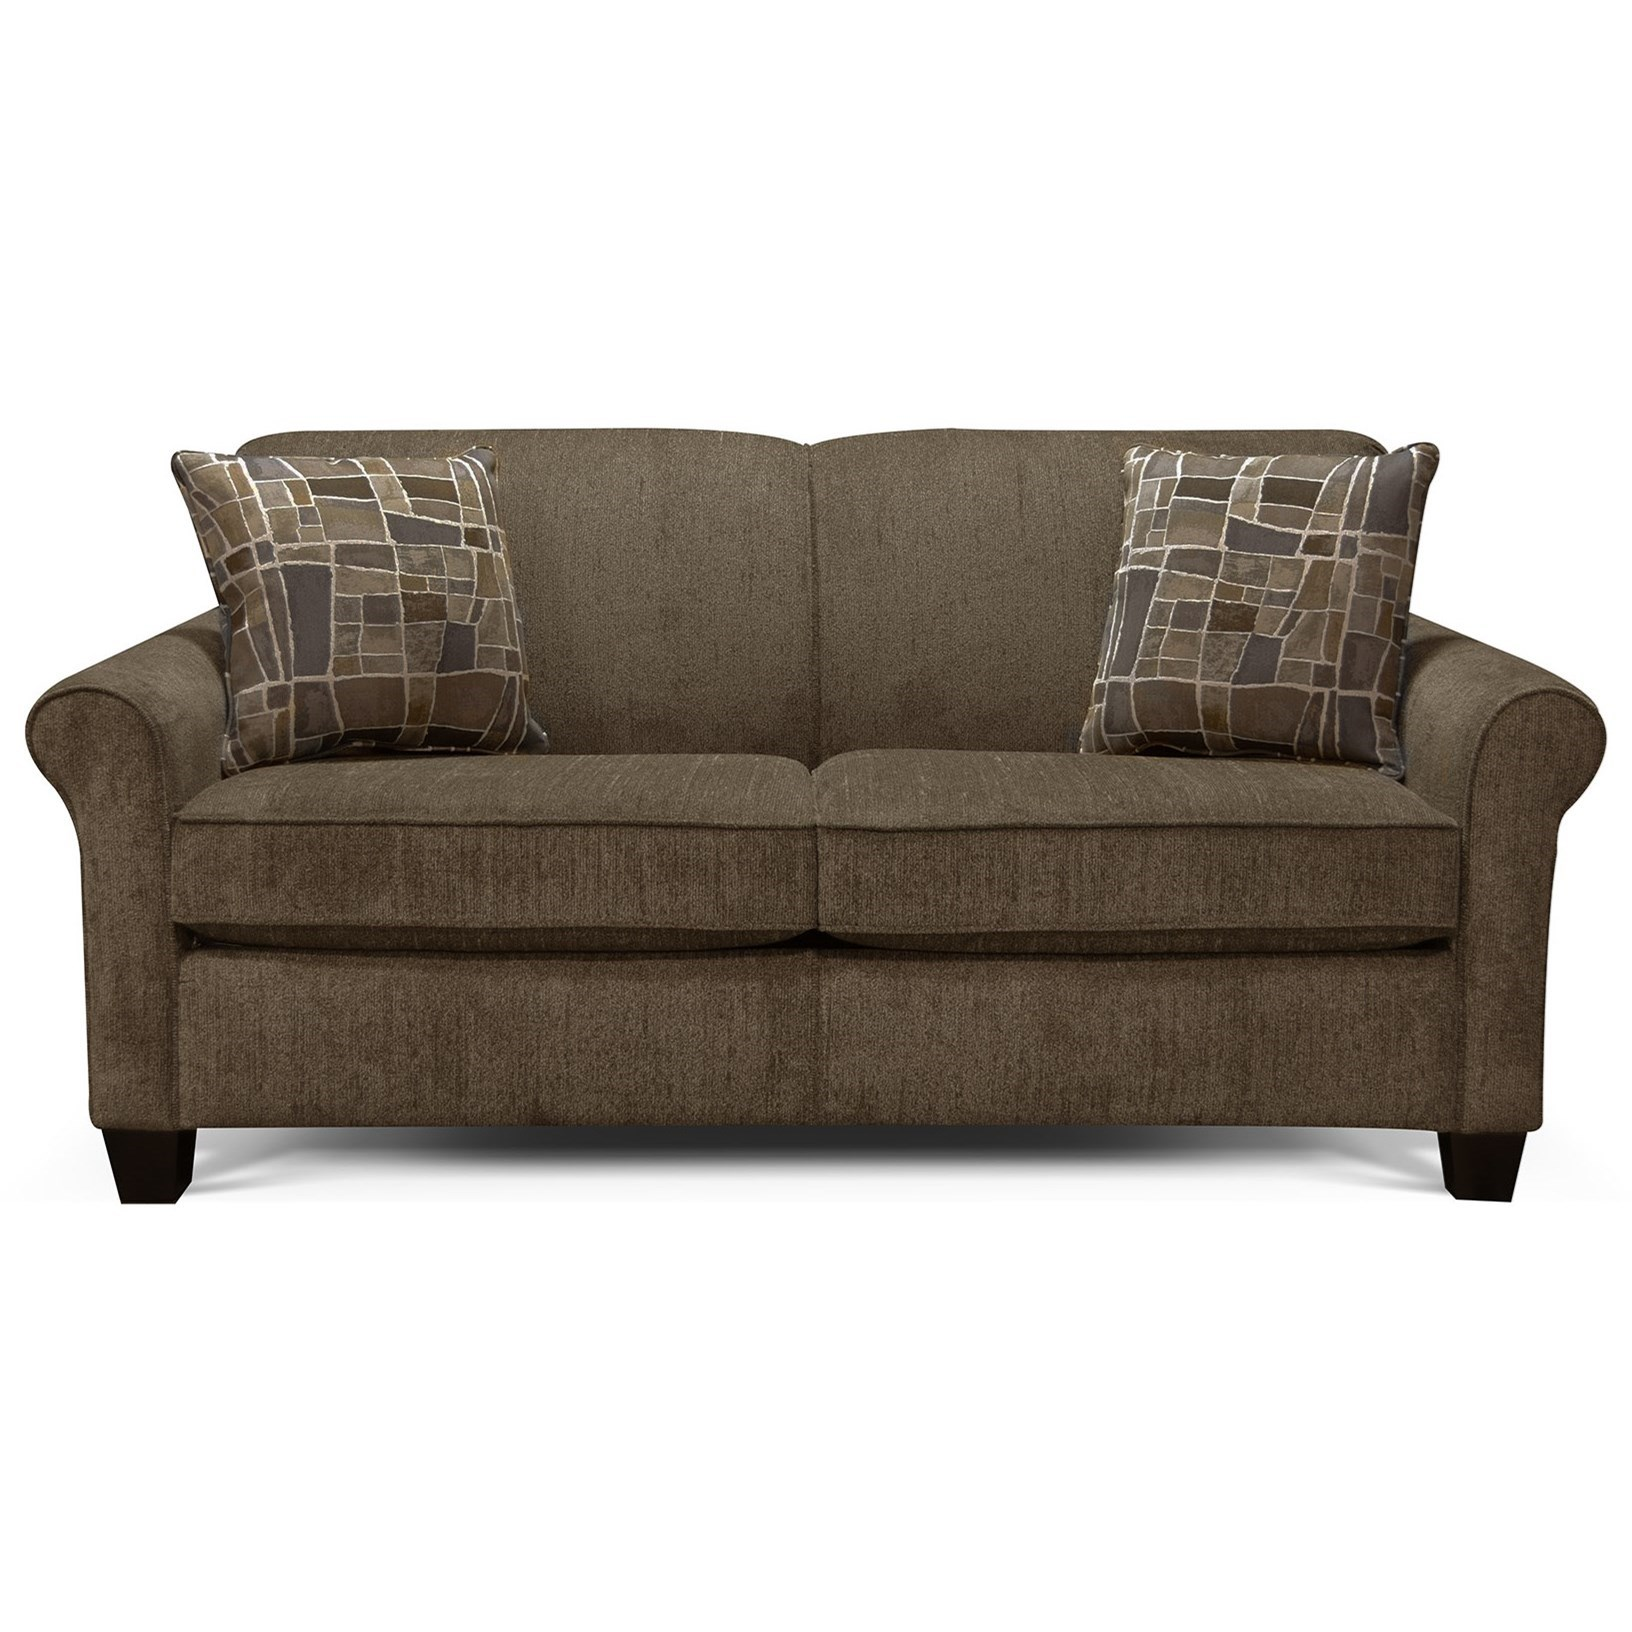 Abalone Full Sleeper Sofa by England at EFO Furniture Outlet